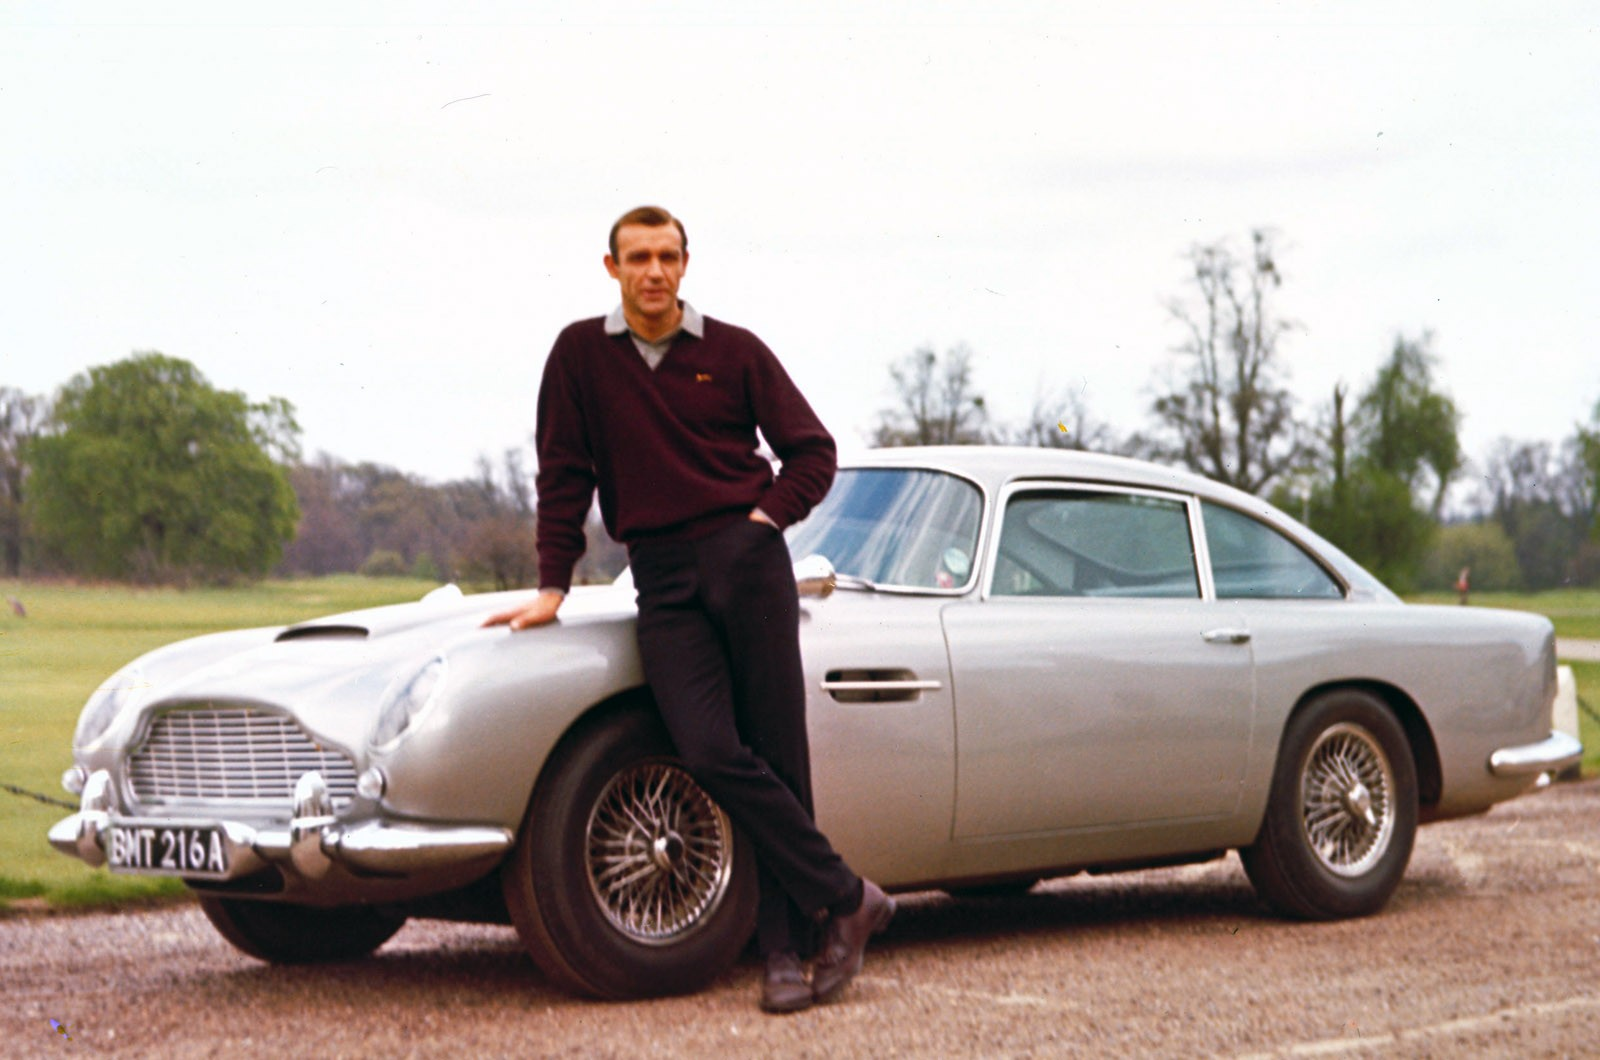 007s ASTON MARTIN The Greatest Toy I Never Owned  Until Now